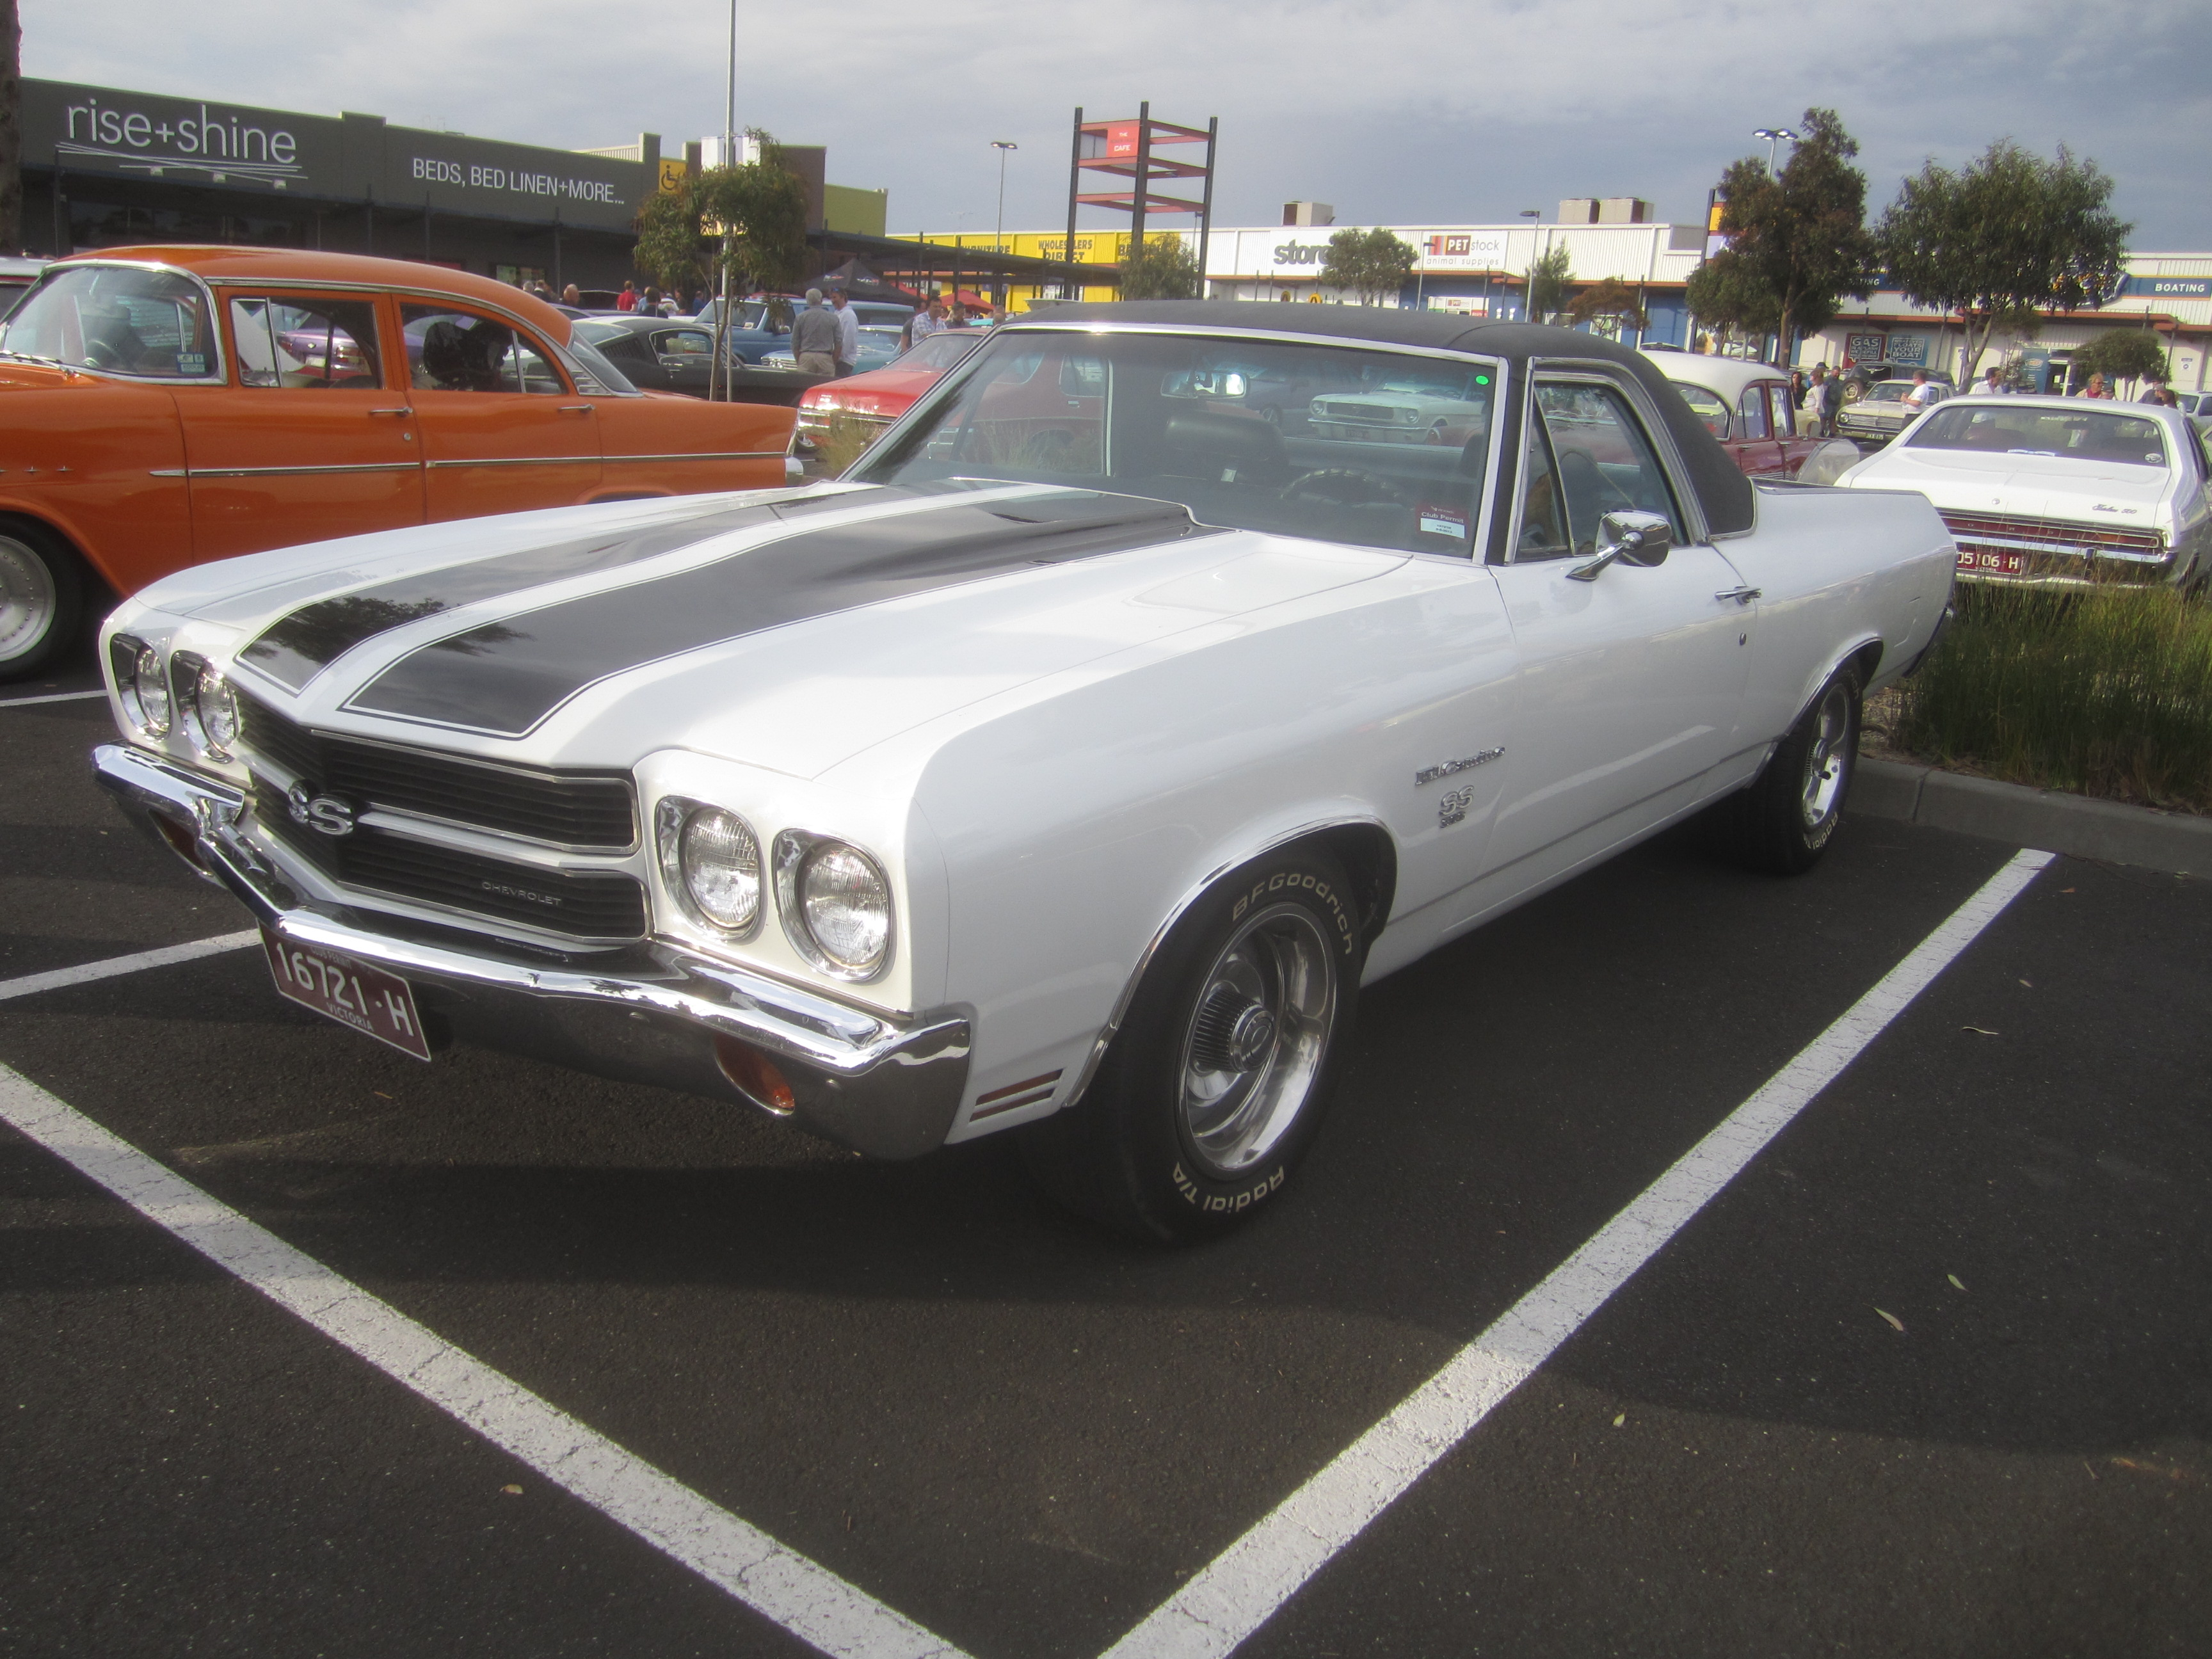 1969 Chevrolet Chevelle Pictures C3655 pi11717665 also 66 Chevelle Ss Craigslist in addition File 1970 Chevrolet El Camino SS396 likewise 1972 Chevrolet El Camino Pictures C10077 as well 70 Chevelle Wiring Harness Diagram. on 1964 chevelle malibu ss 454